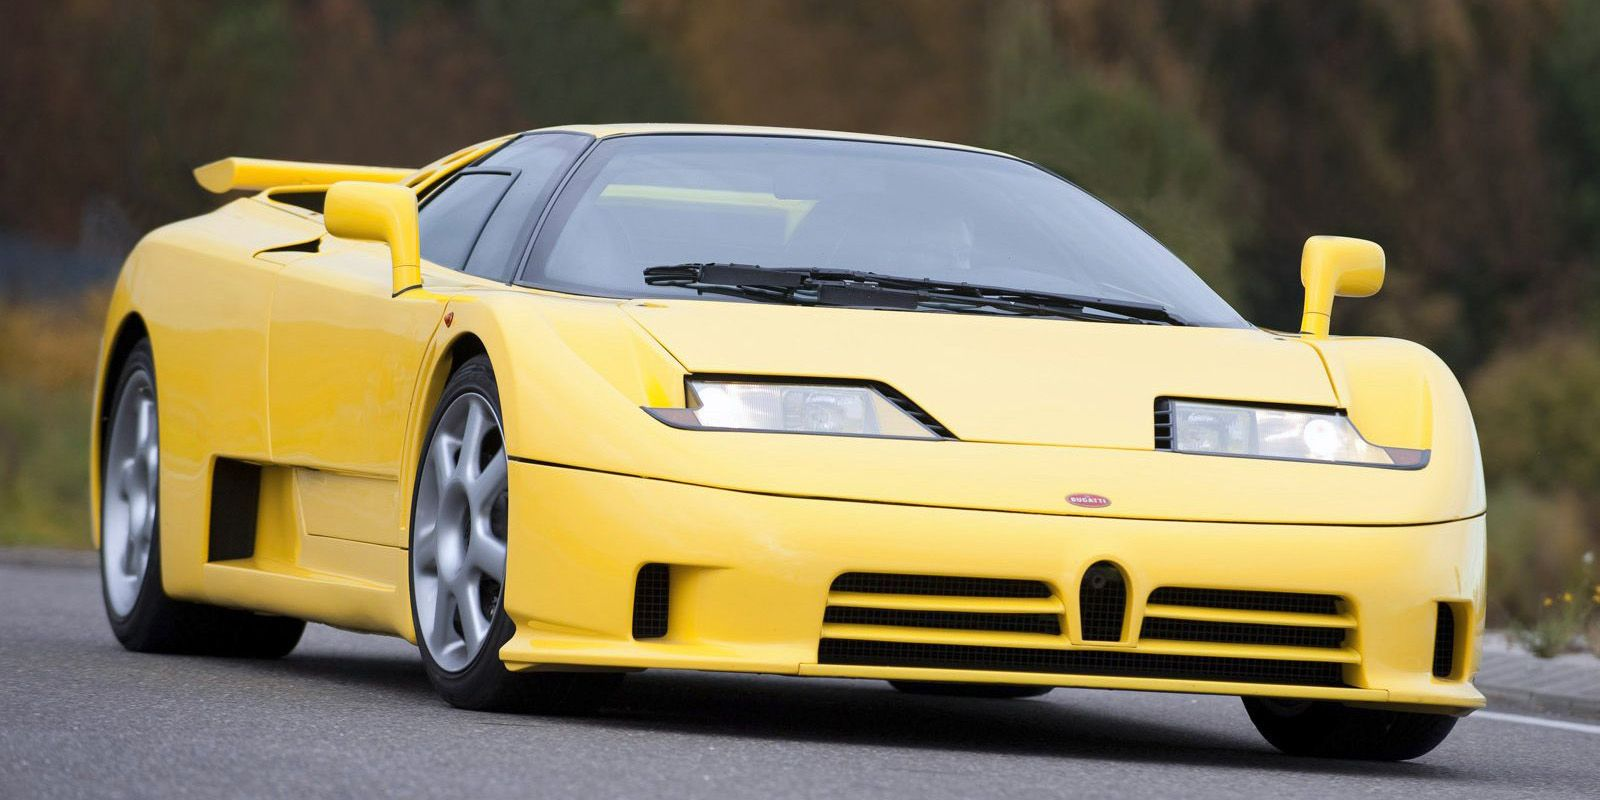 <p>Despite being able to hit 216 mph and having a quad-turbo V12, the EB110 Super Sport was comfortable and luxurious on the inside. It set the stage for the Bugatti Veyron, which has also been praised for its level of amenities and interior features.</p>